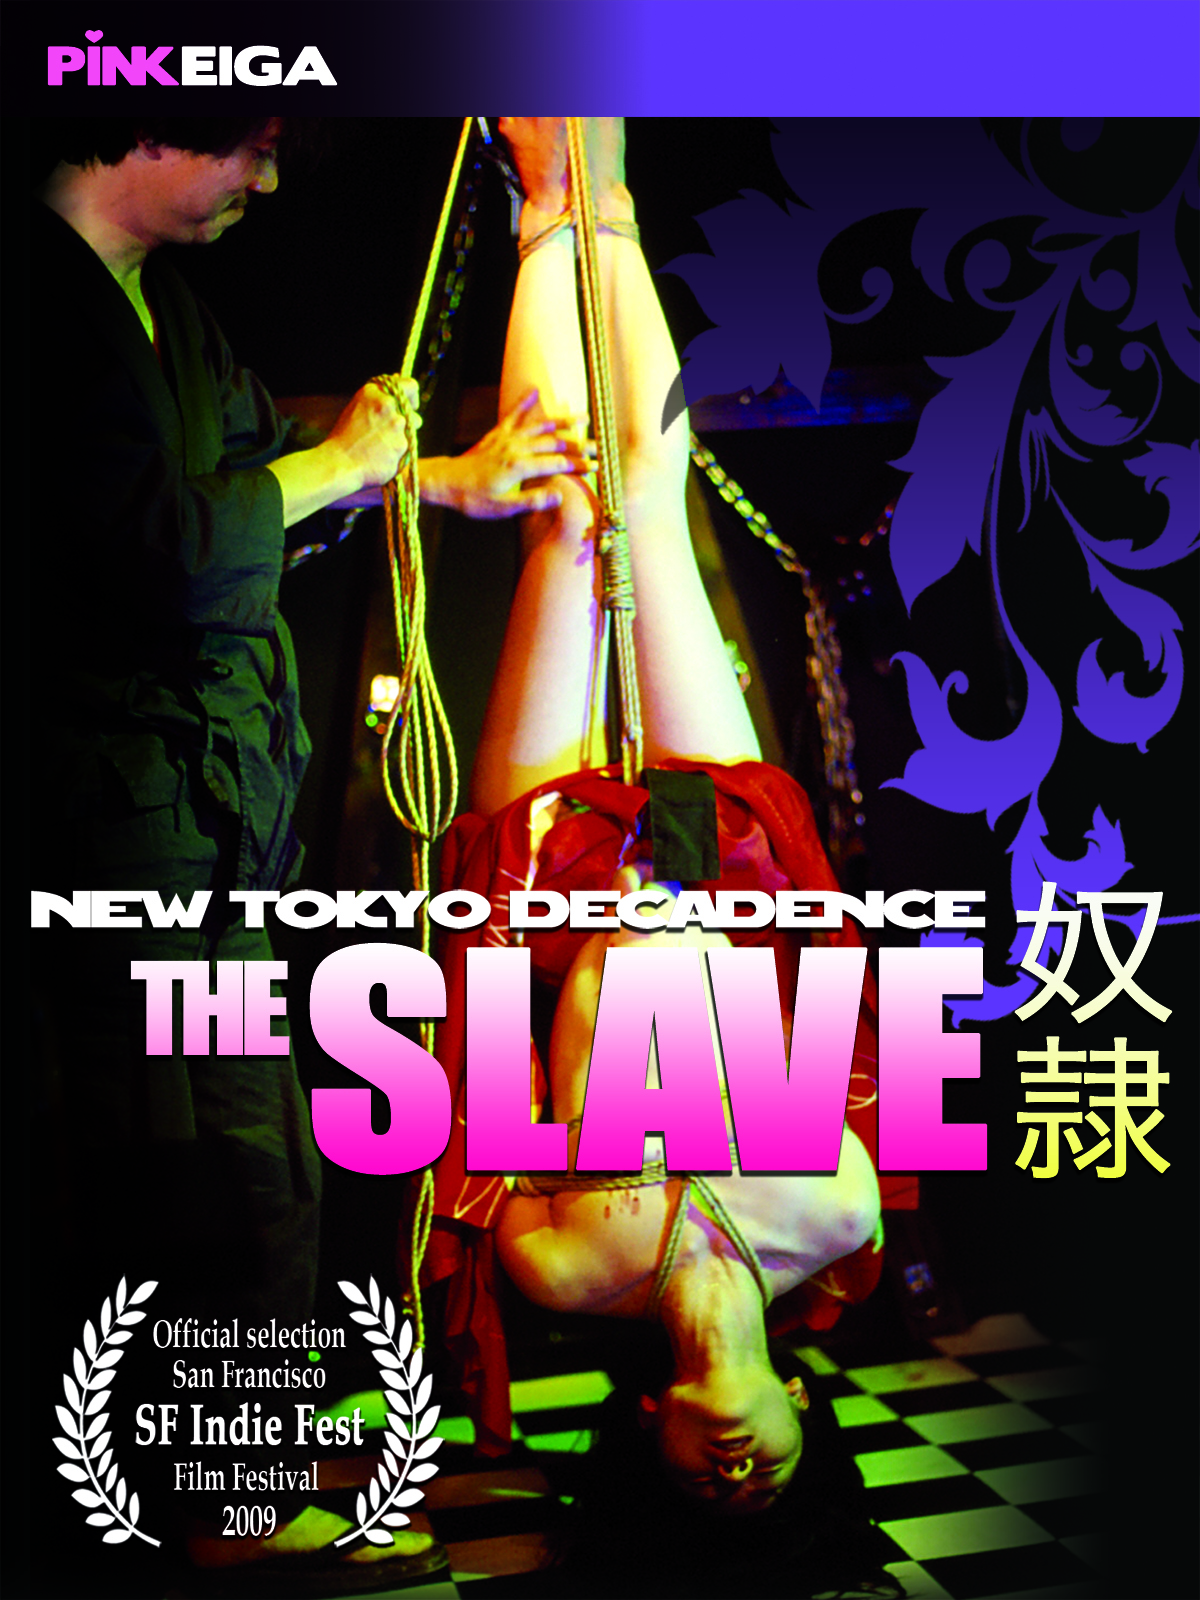 New Tokyo Decadence - The Slave  -SD-  DOWNLOAD TO OWN